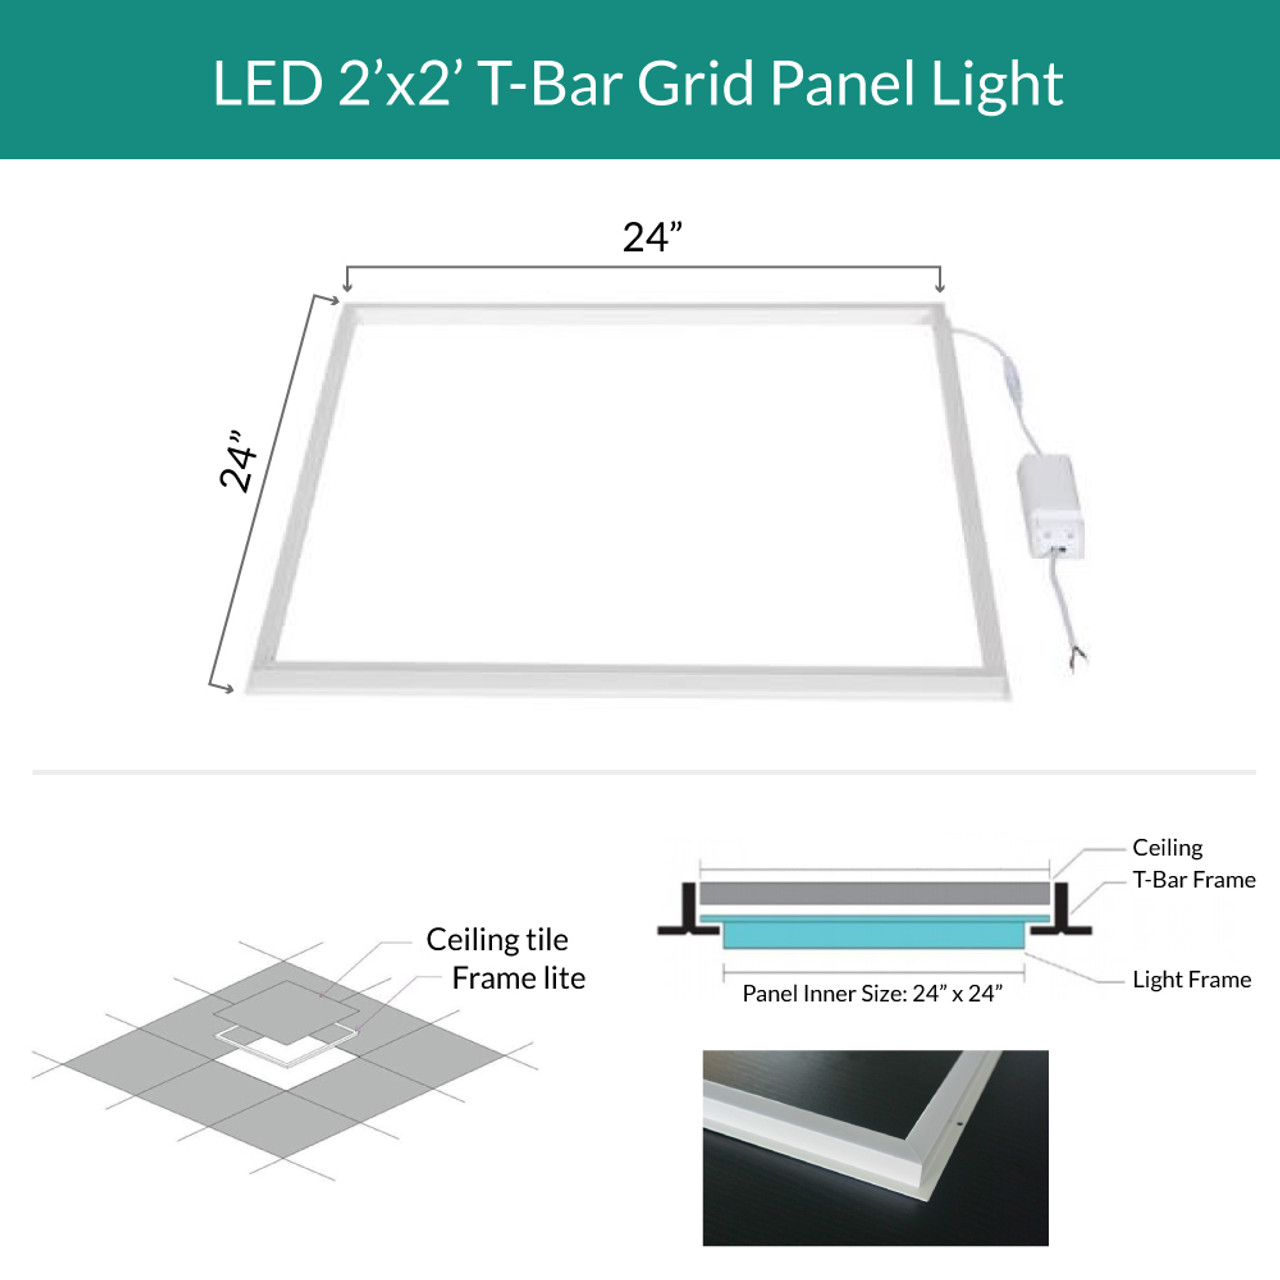 https www superiorlighting com led edge lit grid ceiling tile perimeter light choose your size and color for pricing